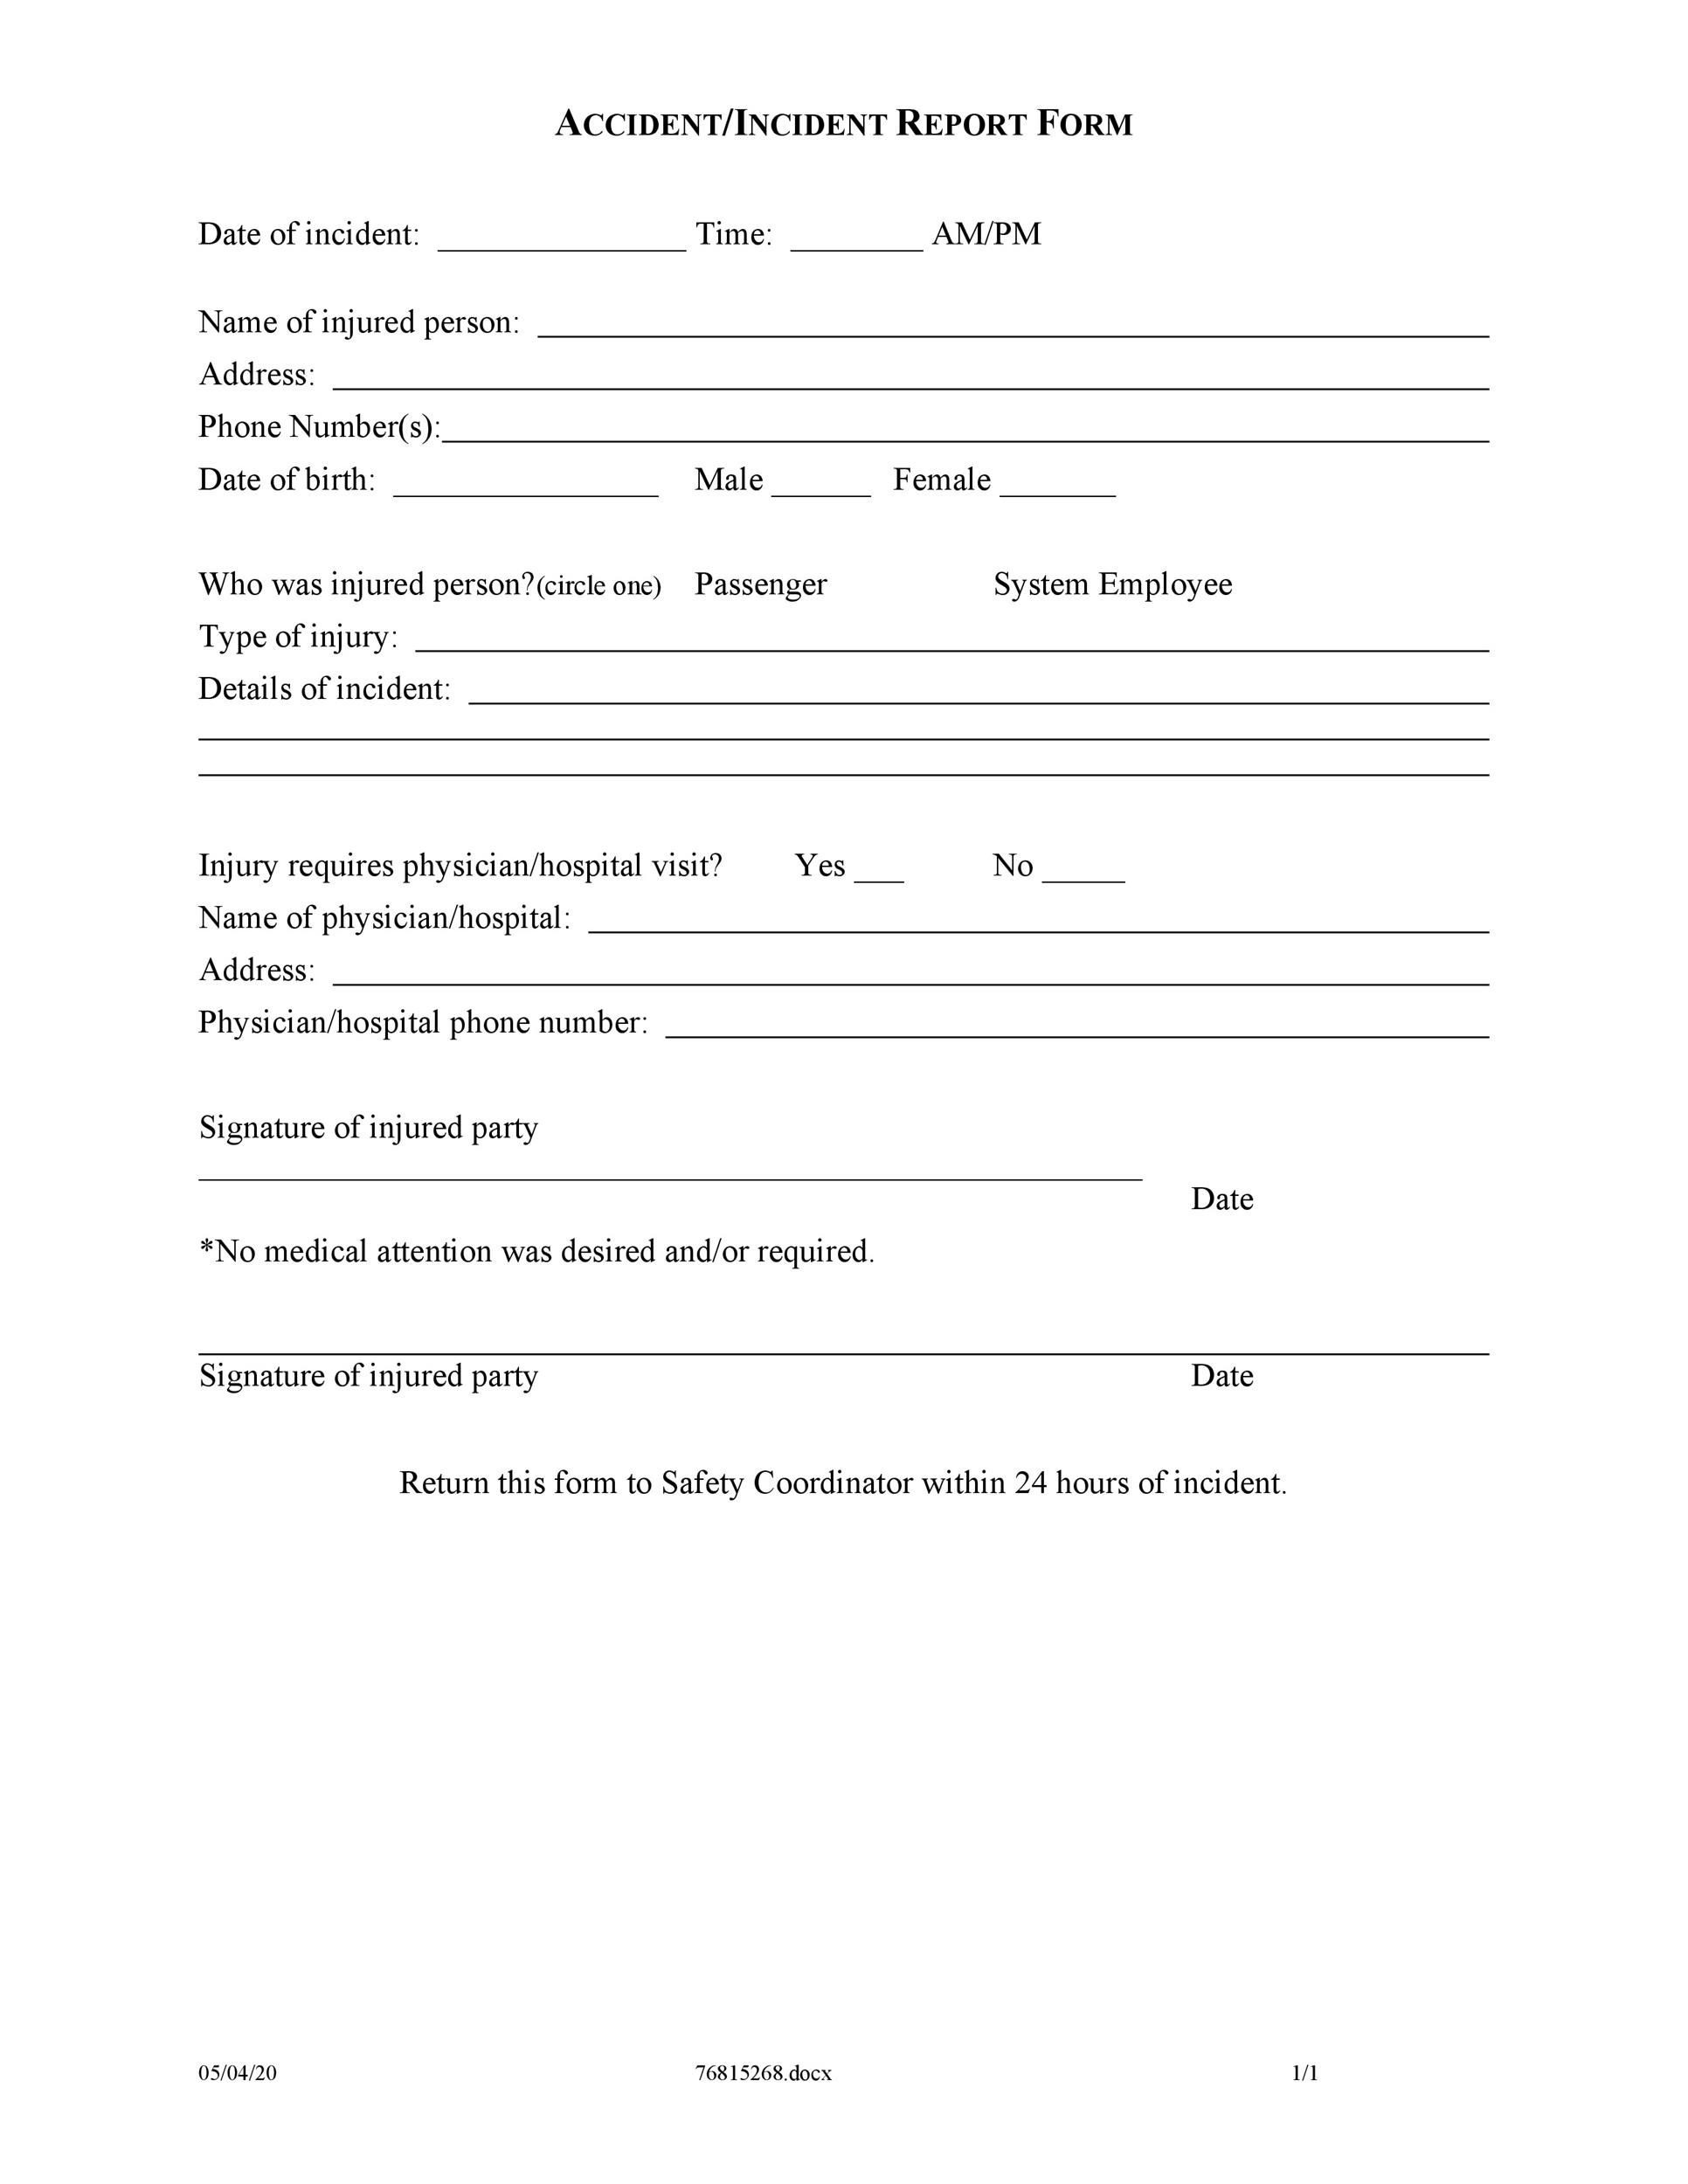 005 Awesome Accident Report Form Template Highest Clarity  Free South Africa PdfFull